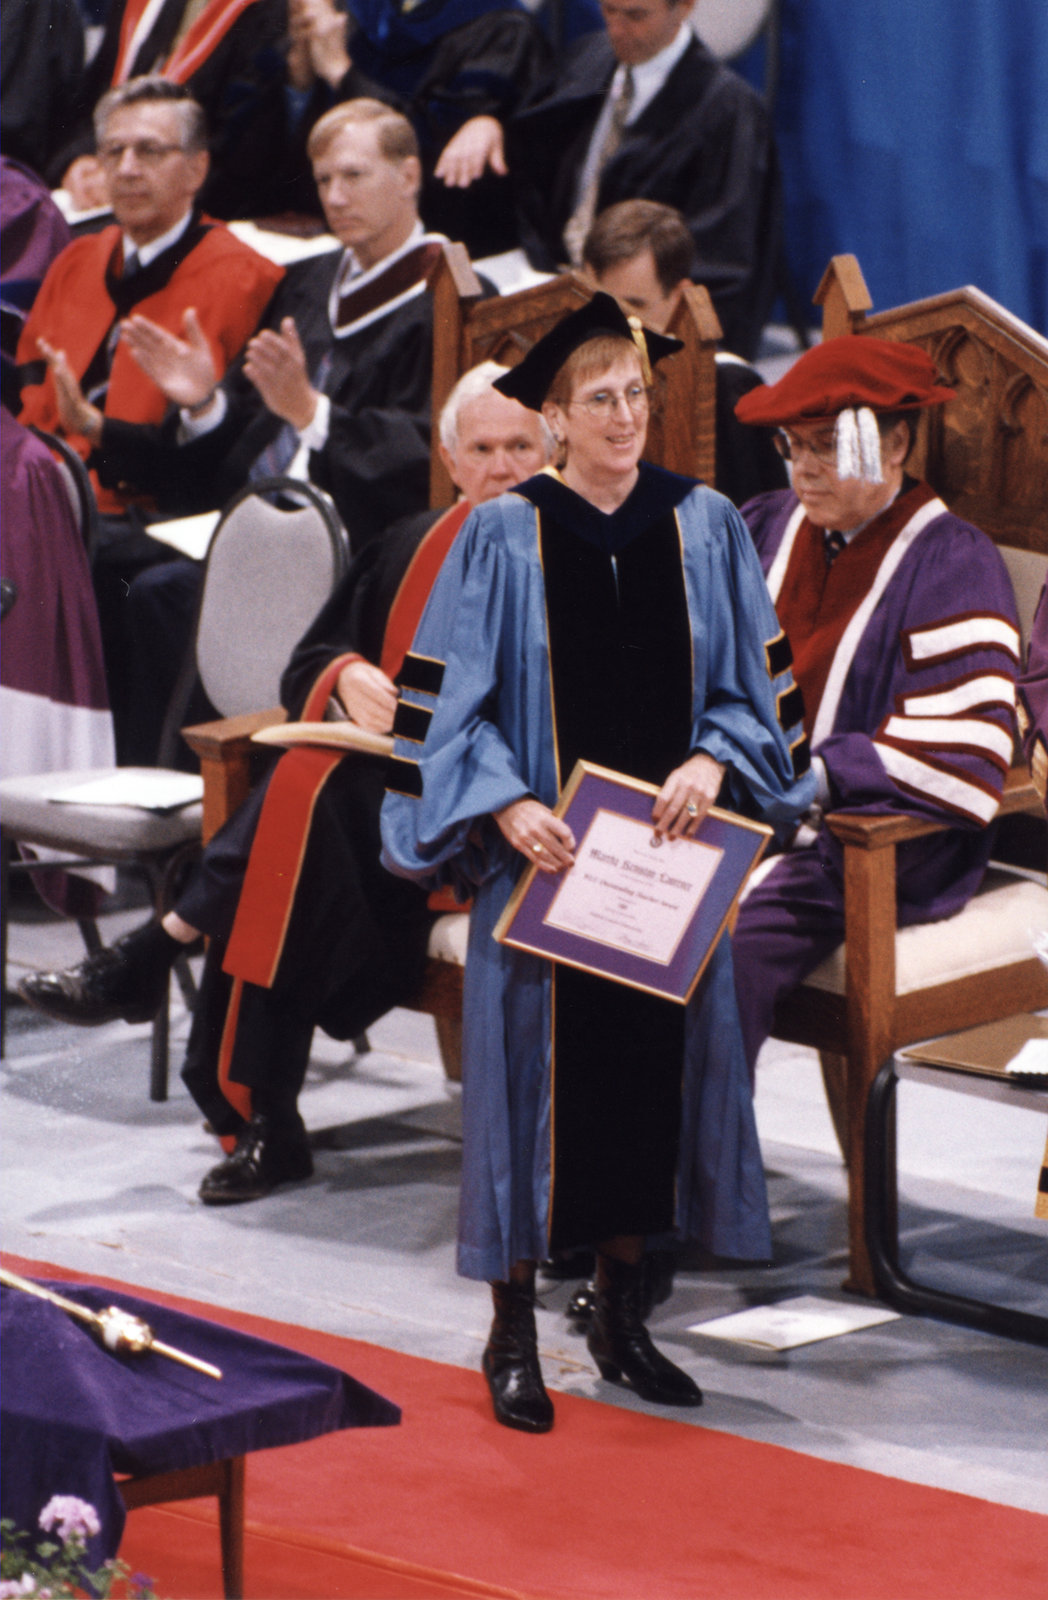 Martha Keniston Laurence at spring convocation 1998, Wilfrid Laurier University